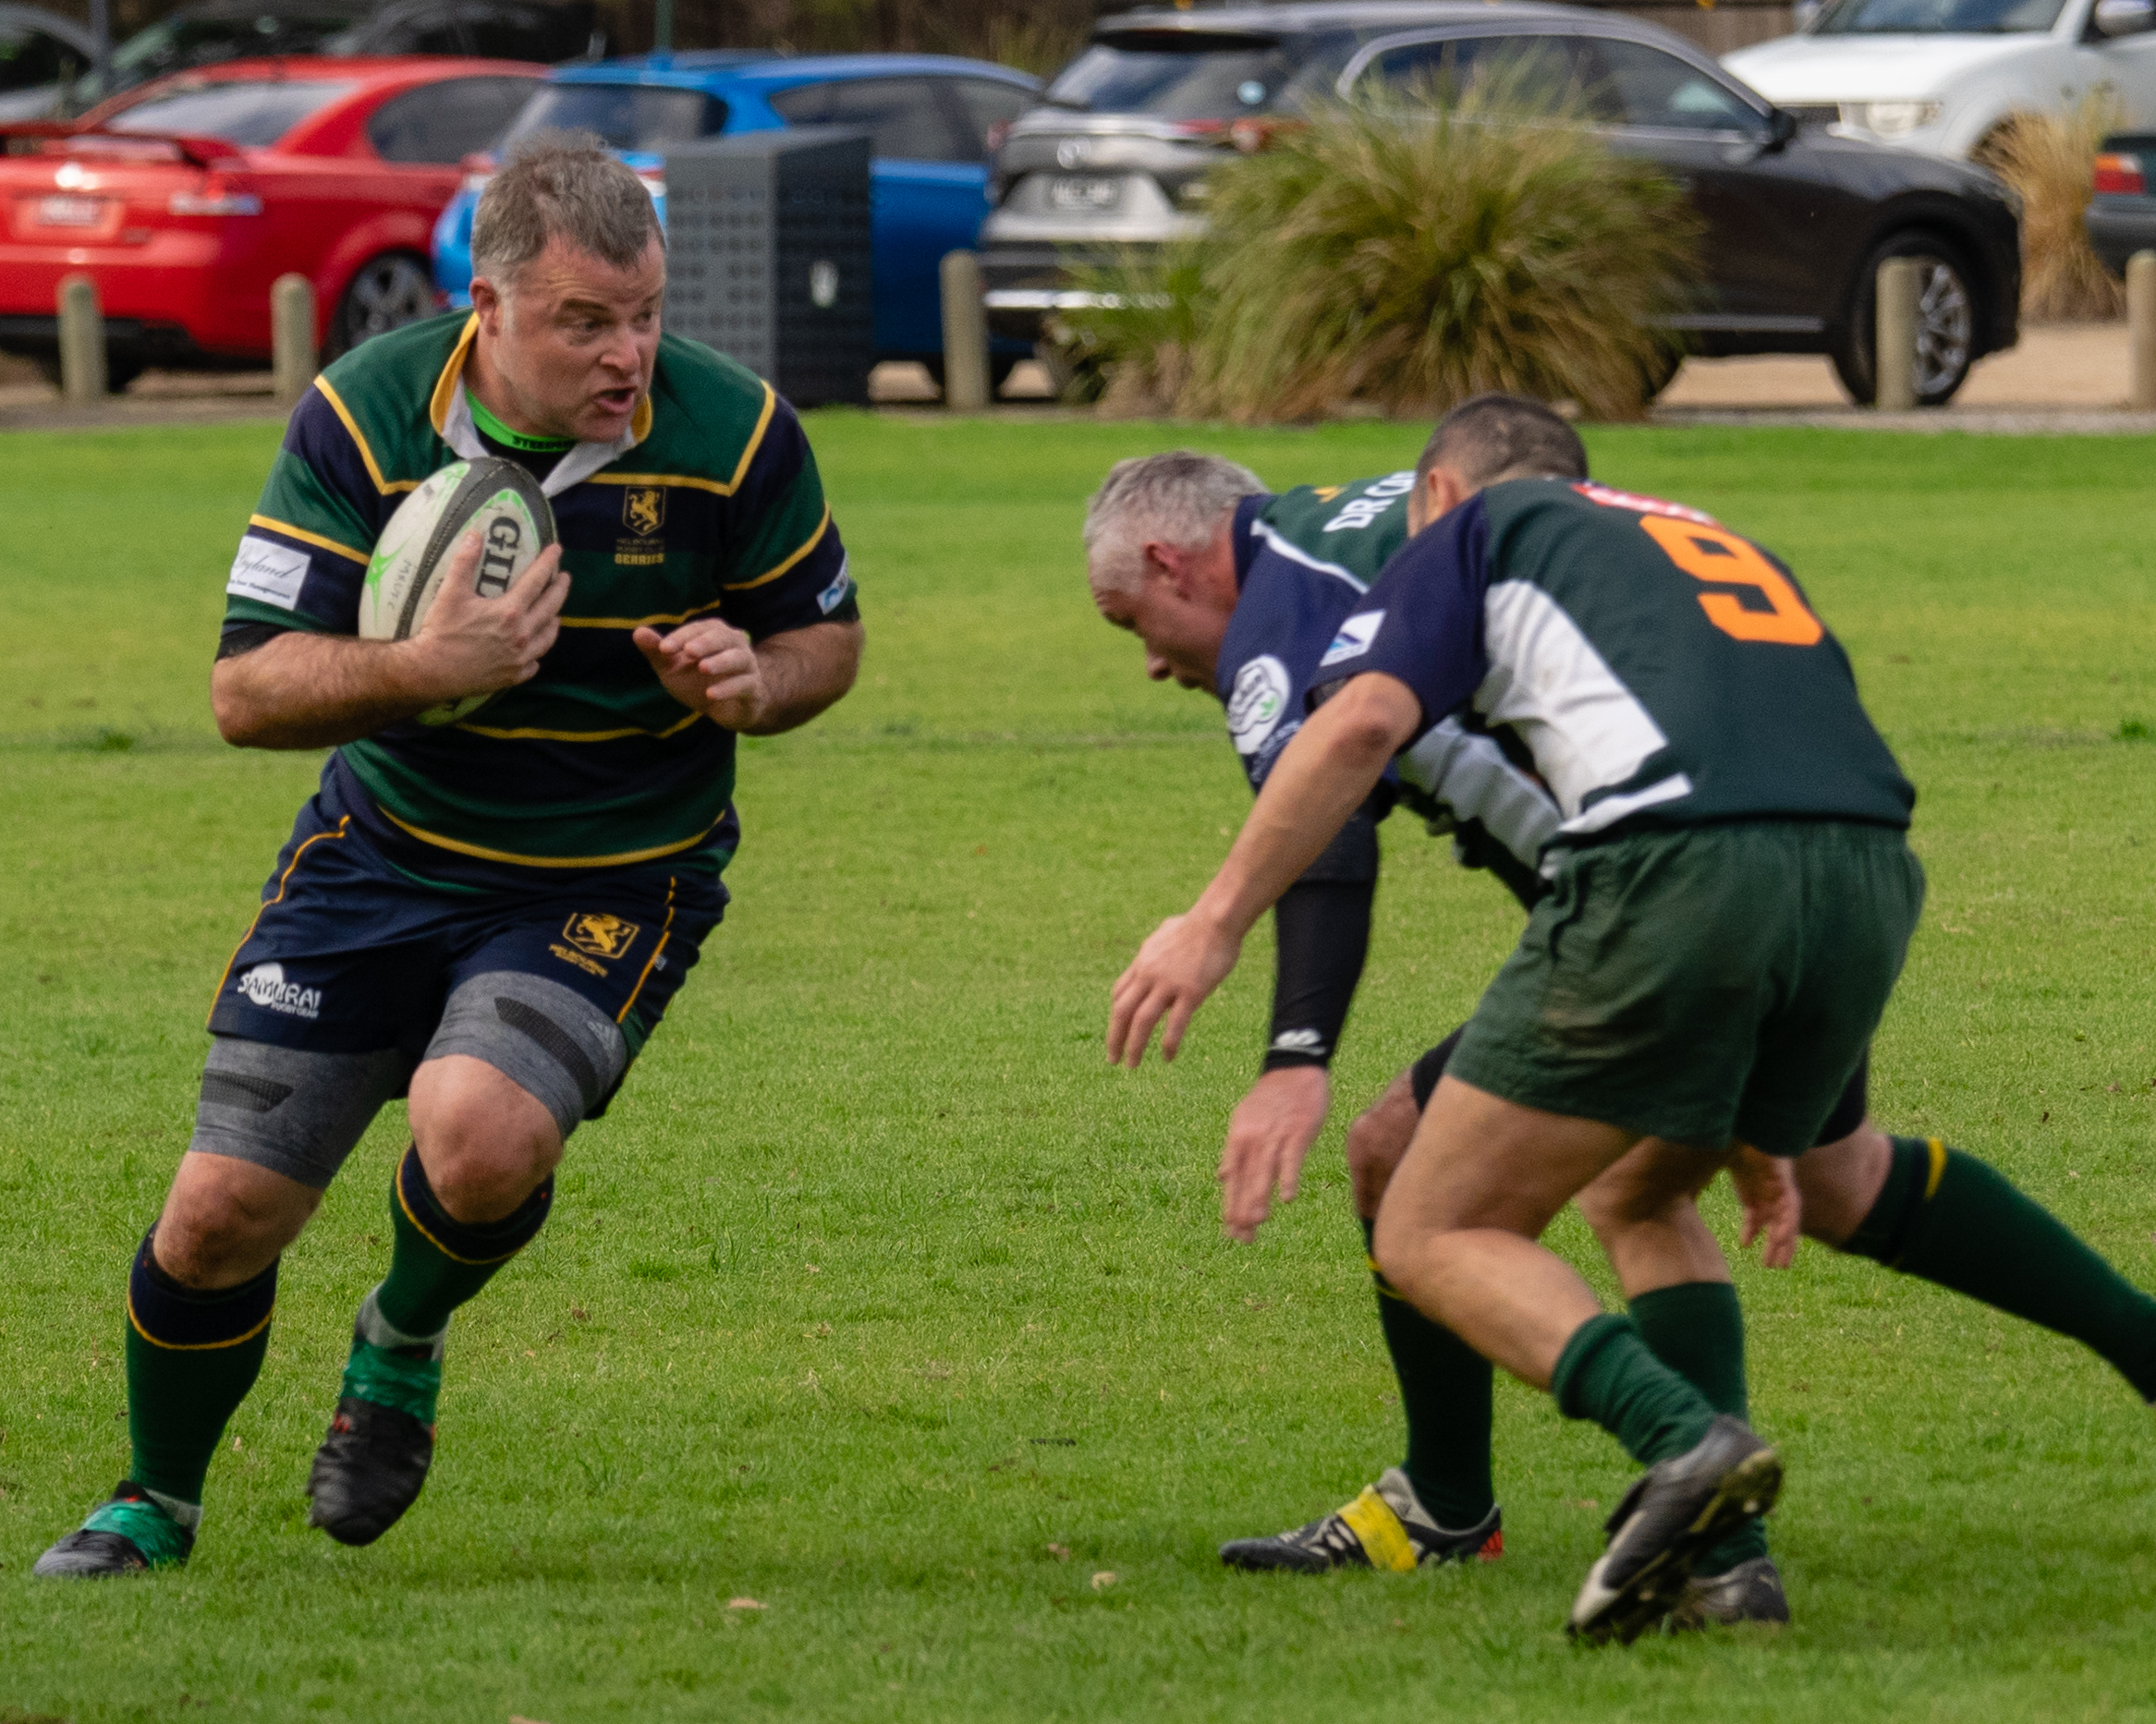 masters at harlequins-9.jpg